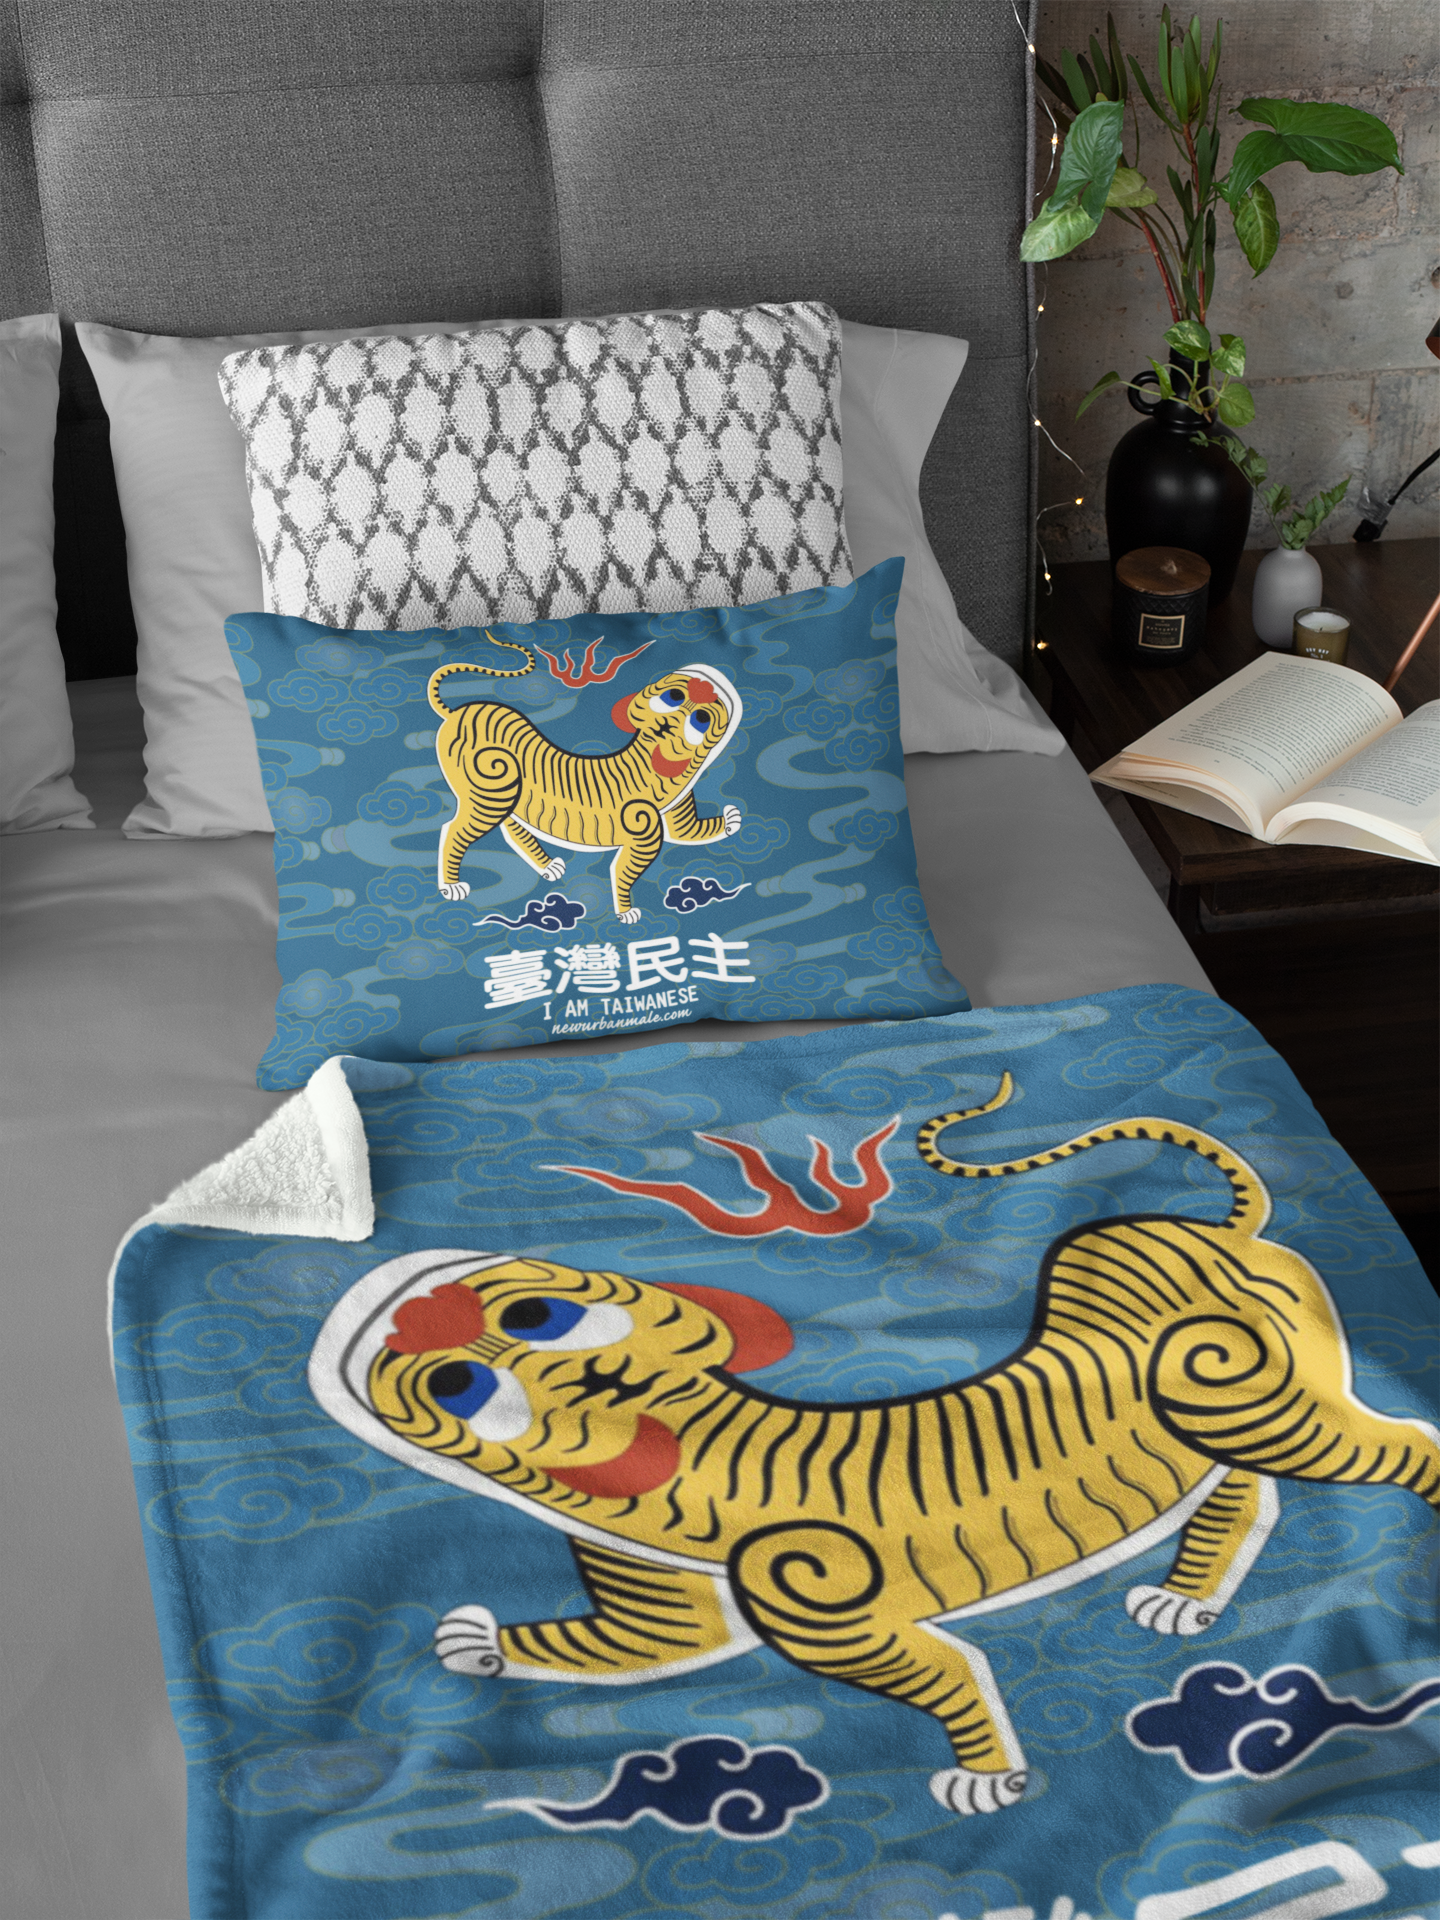 home-decor-mockup-featuring-a-pillow-and-a-blanket-31296 (1).png